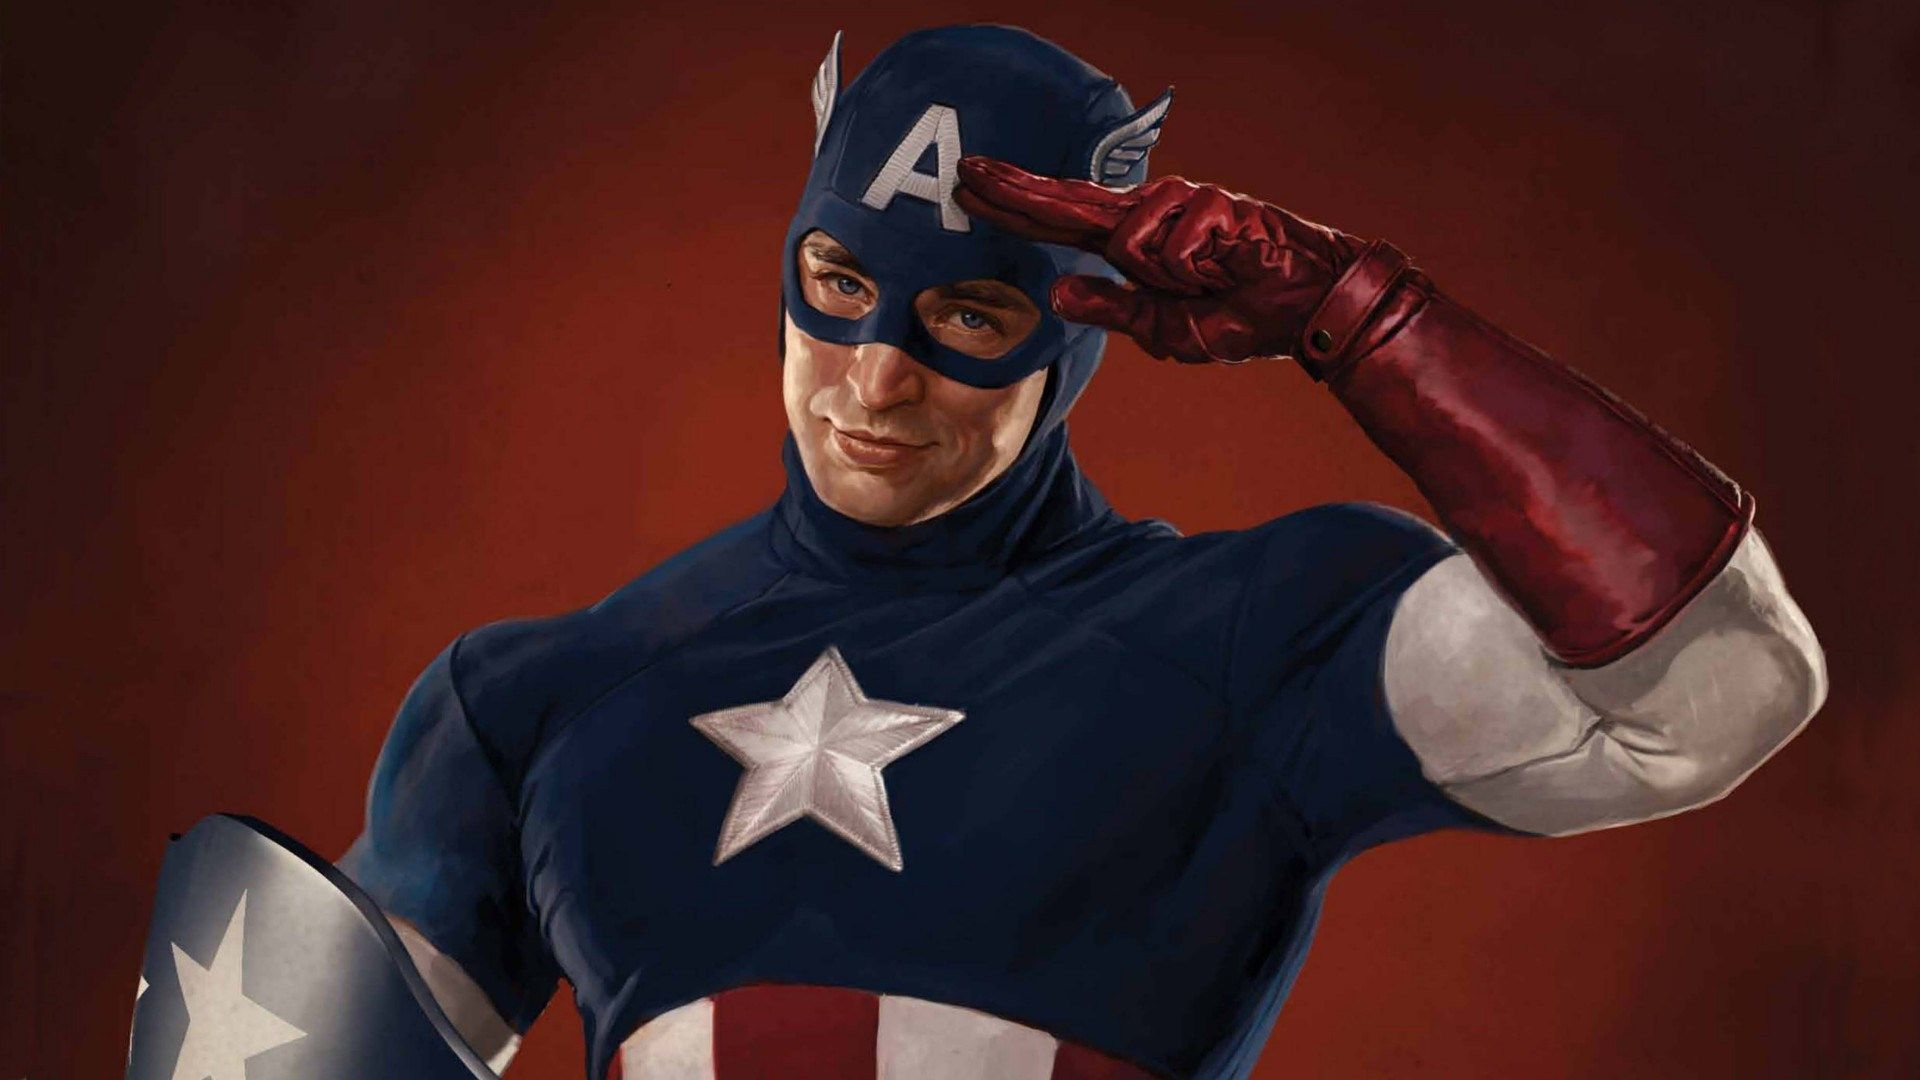 Free Pictures Captain America The First Avenger 163 Kb Free